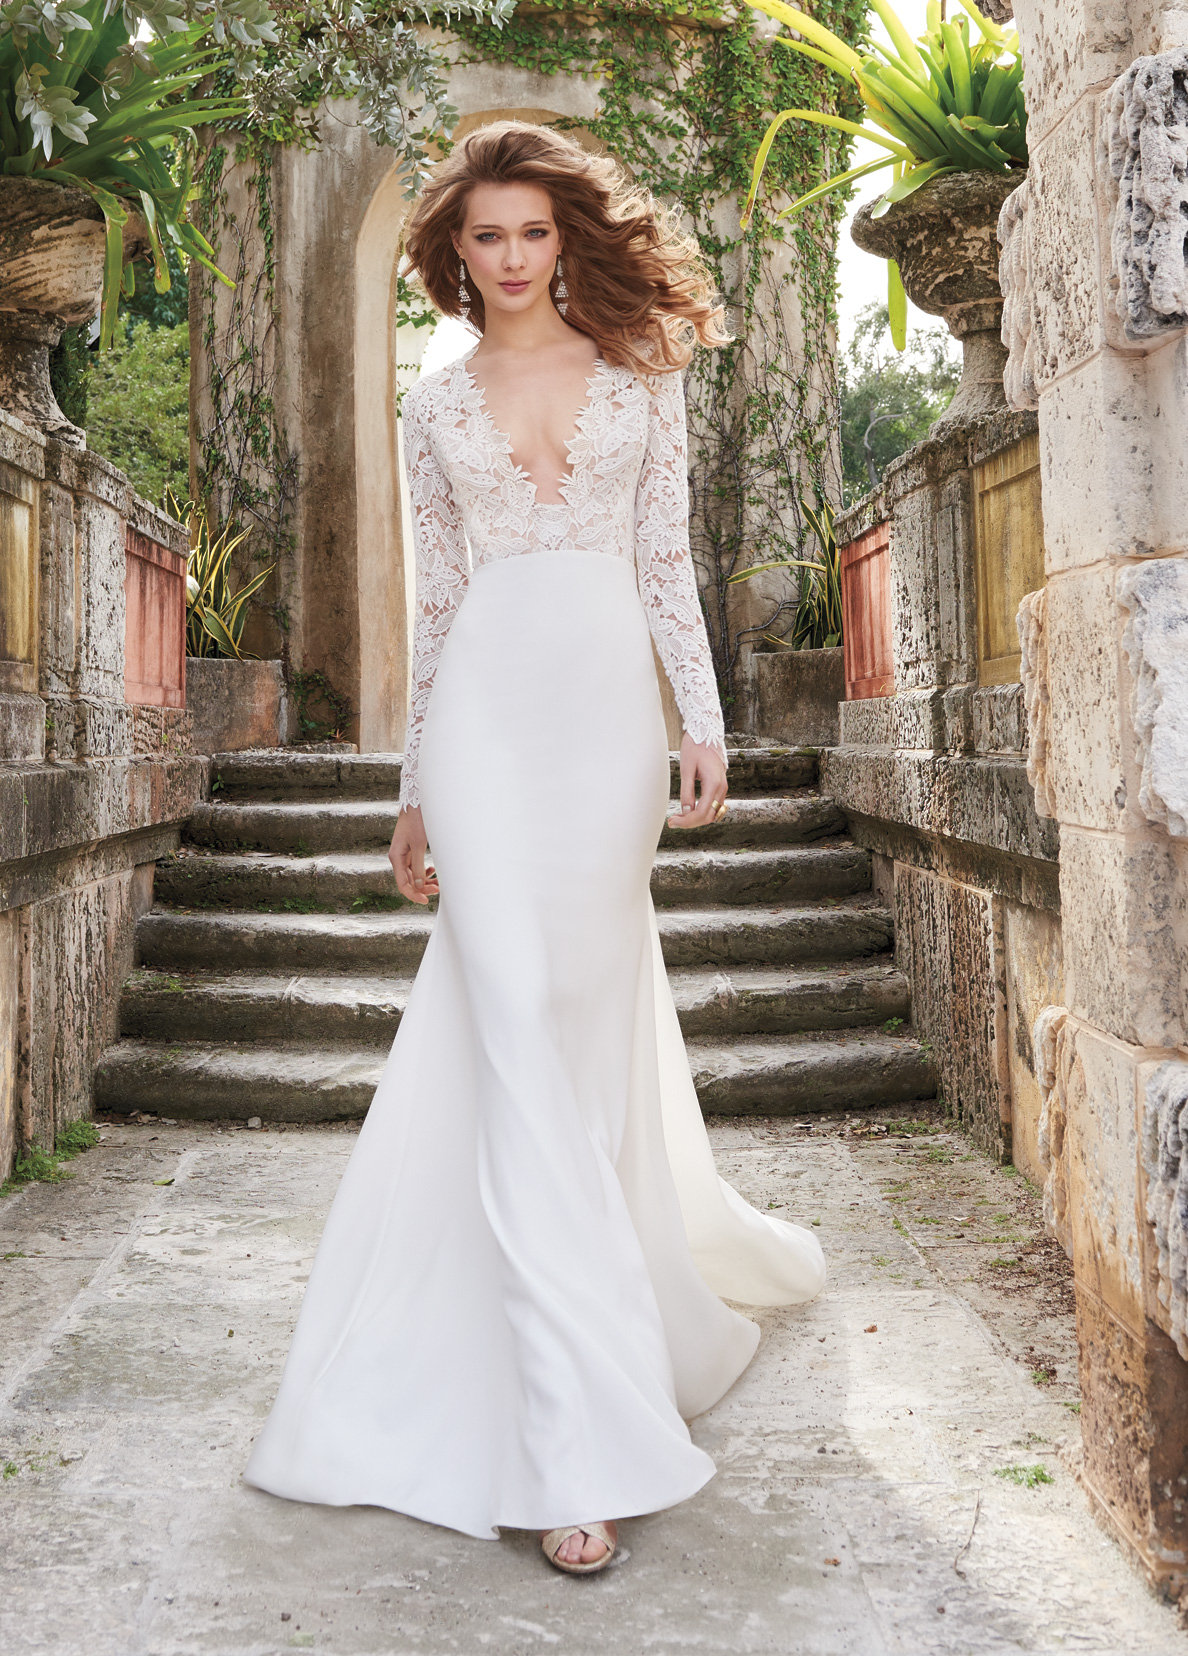 Wedding dress gown style